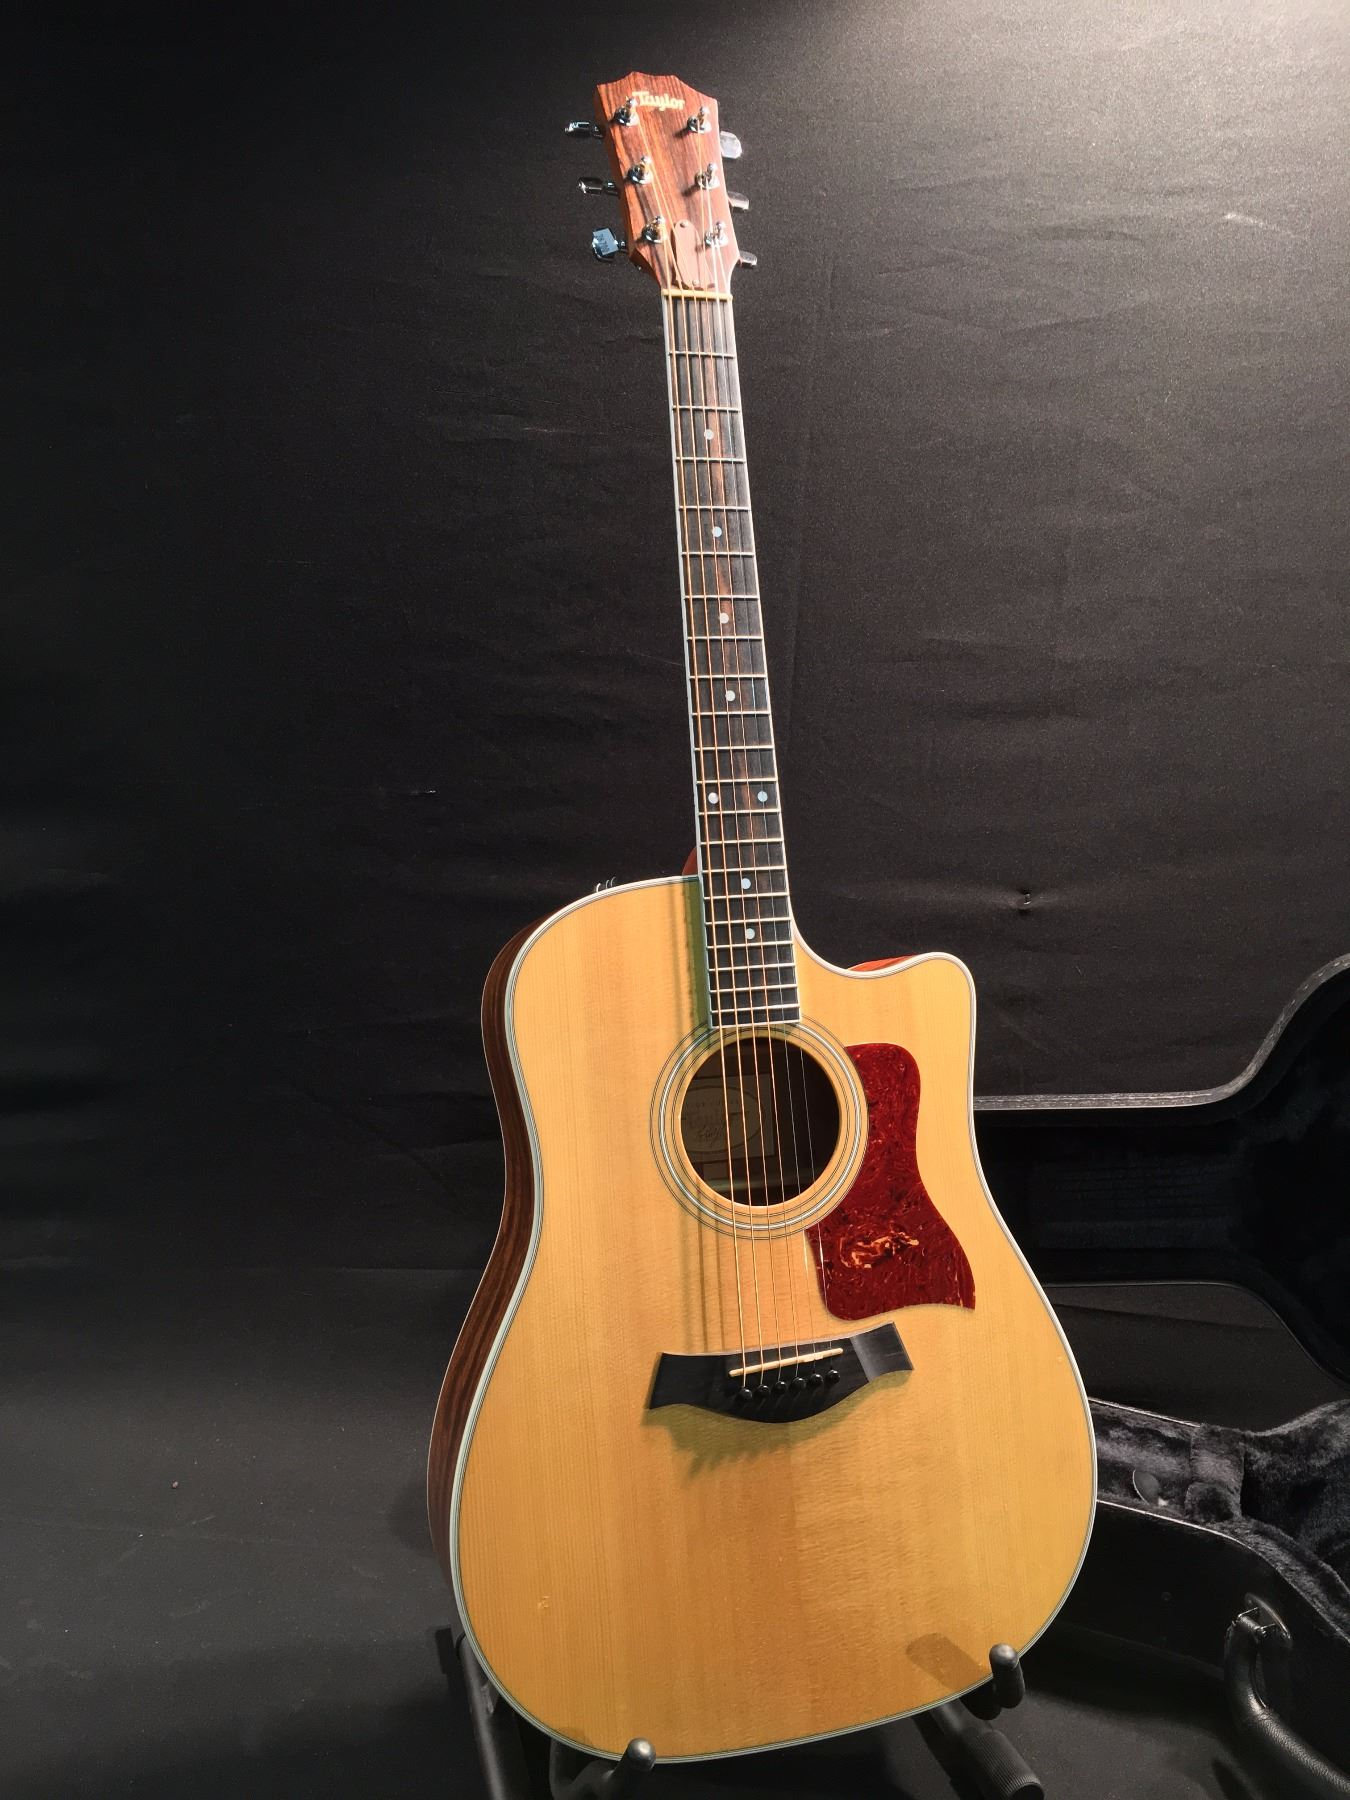 taylor 410ce cut away acoustic electric guitar serial number 1109070027 comes with original. Black Bedroom Furniture Sets. Home Design Ideas